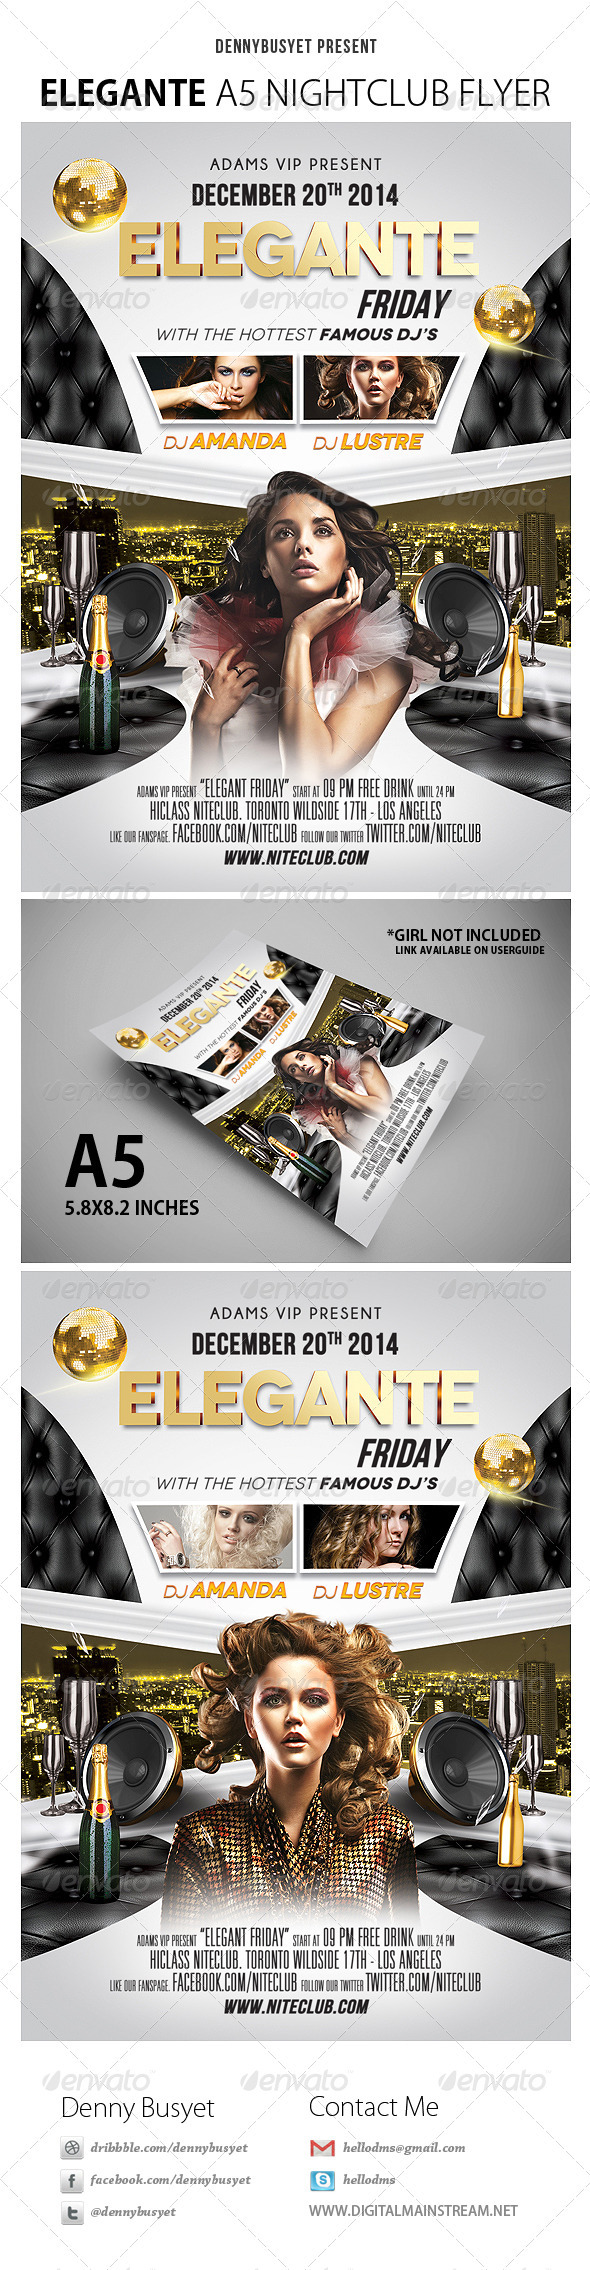 Elegante Nightclub Flyer - Events Flyers